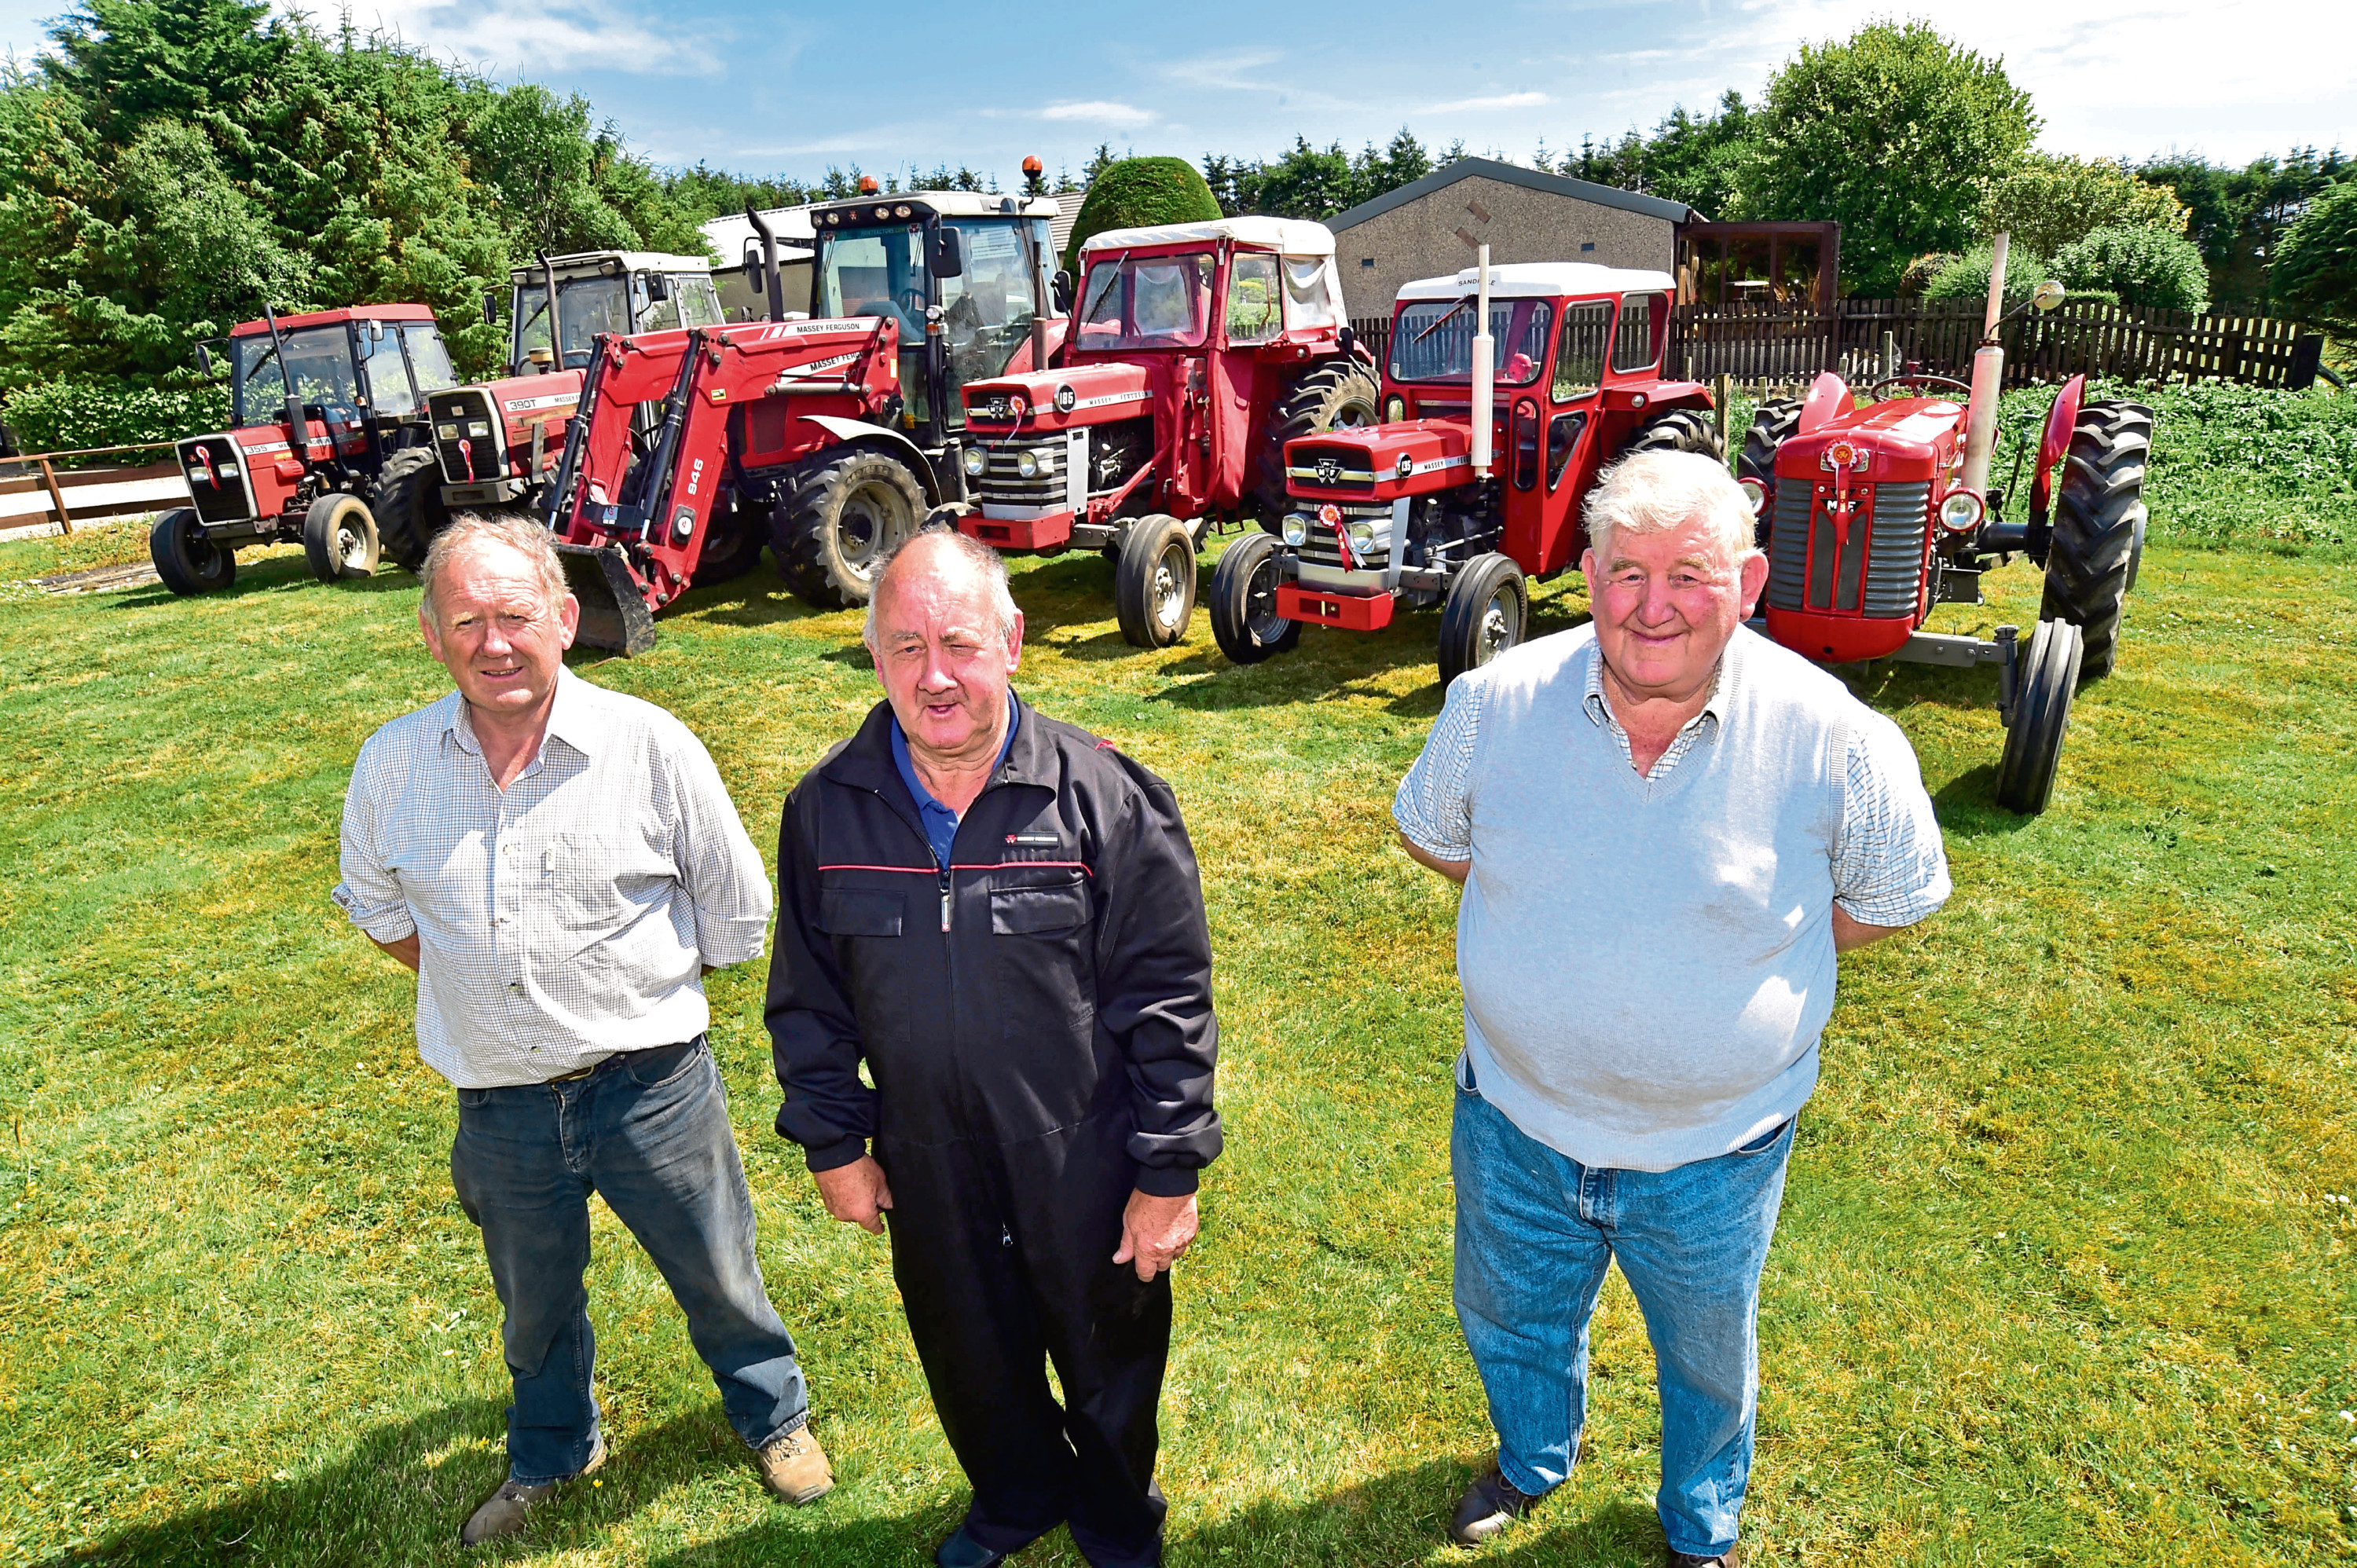 Charlie Cruikshank, Doug Nicol and Bill Stewart with some of the tractors heading to the show.